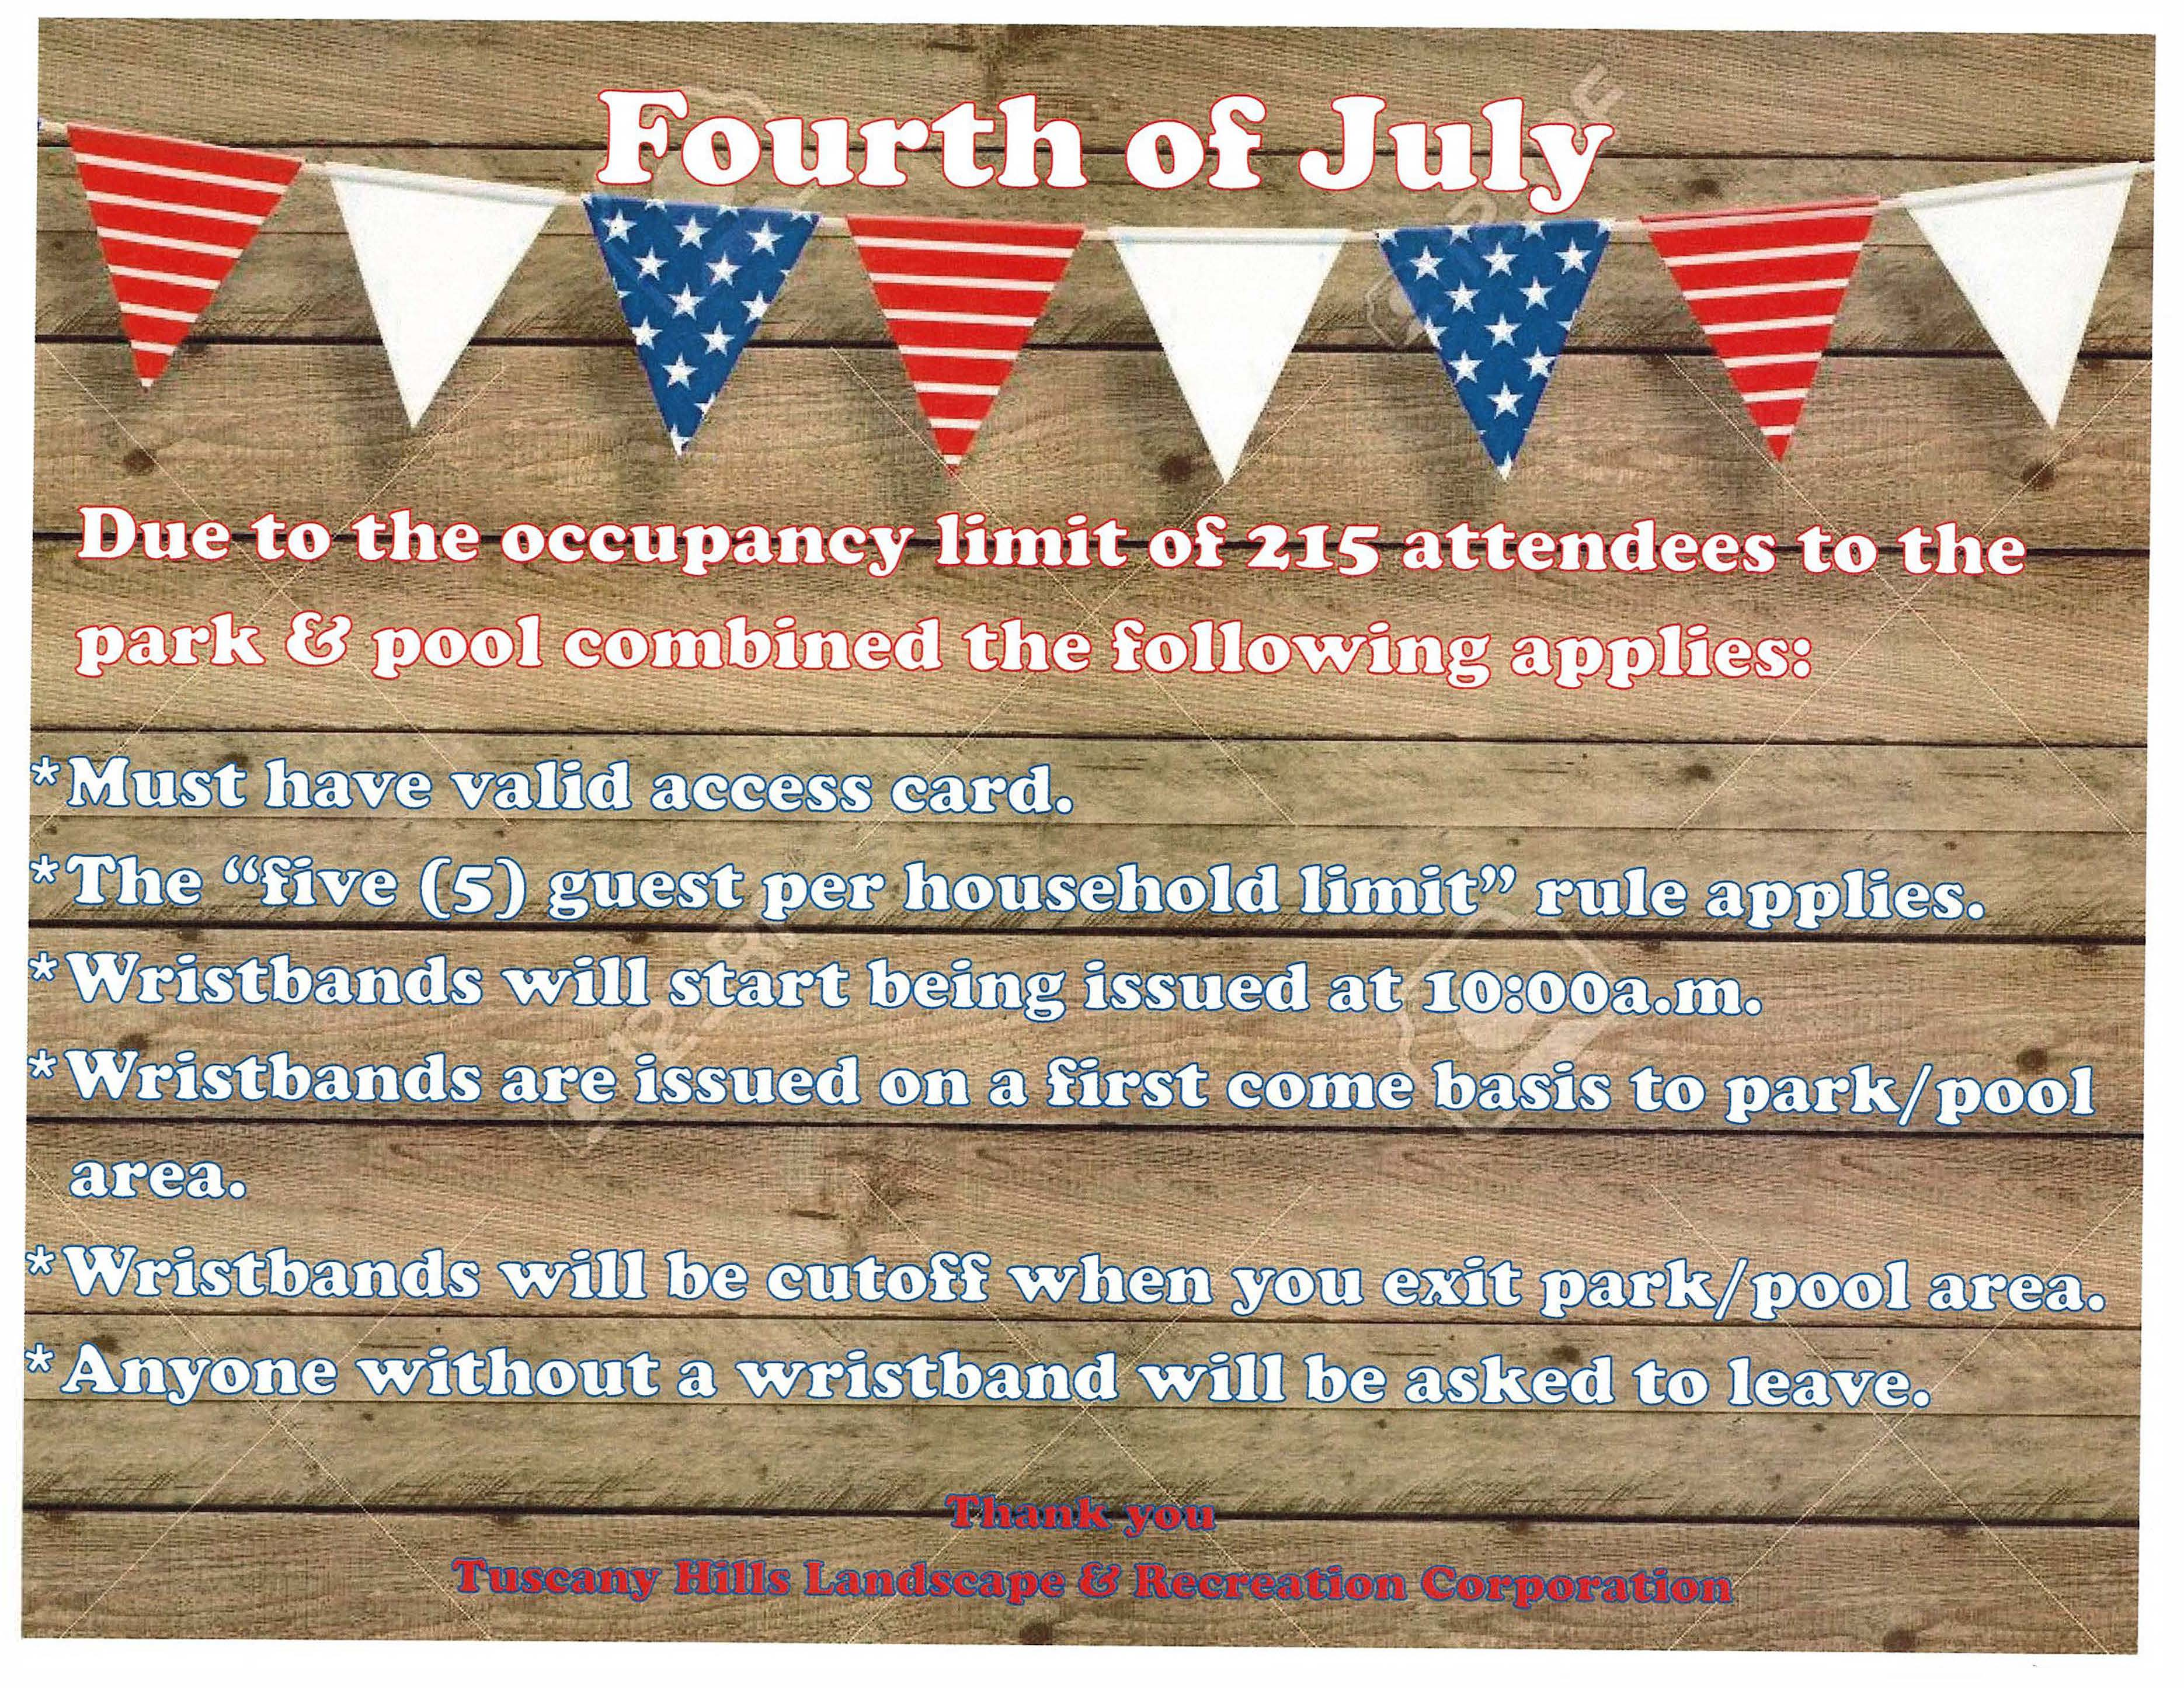 Tuscany Hills Park & Pool Rules for the 4th of July